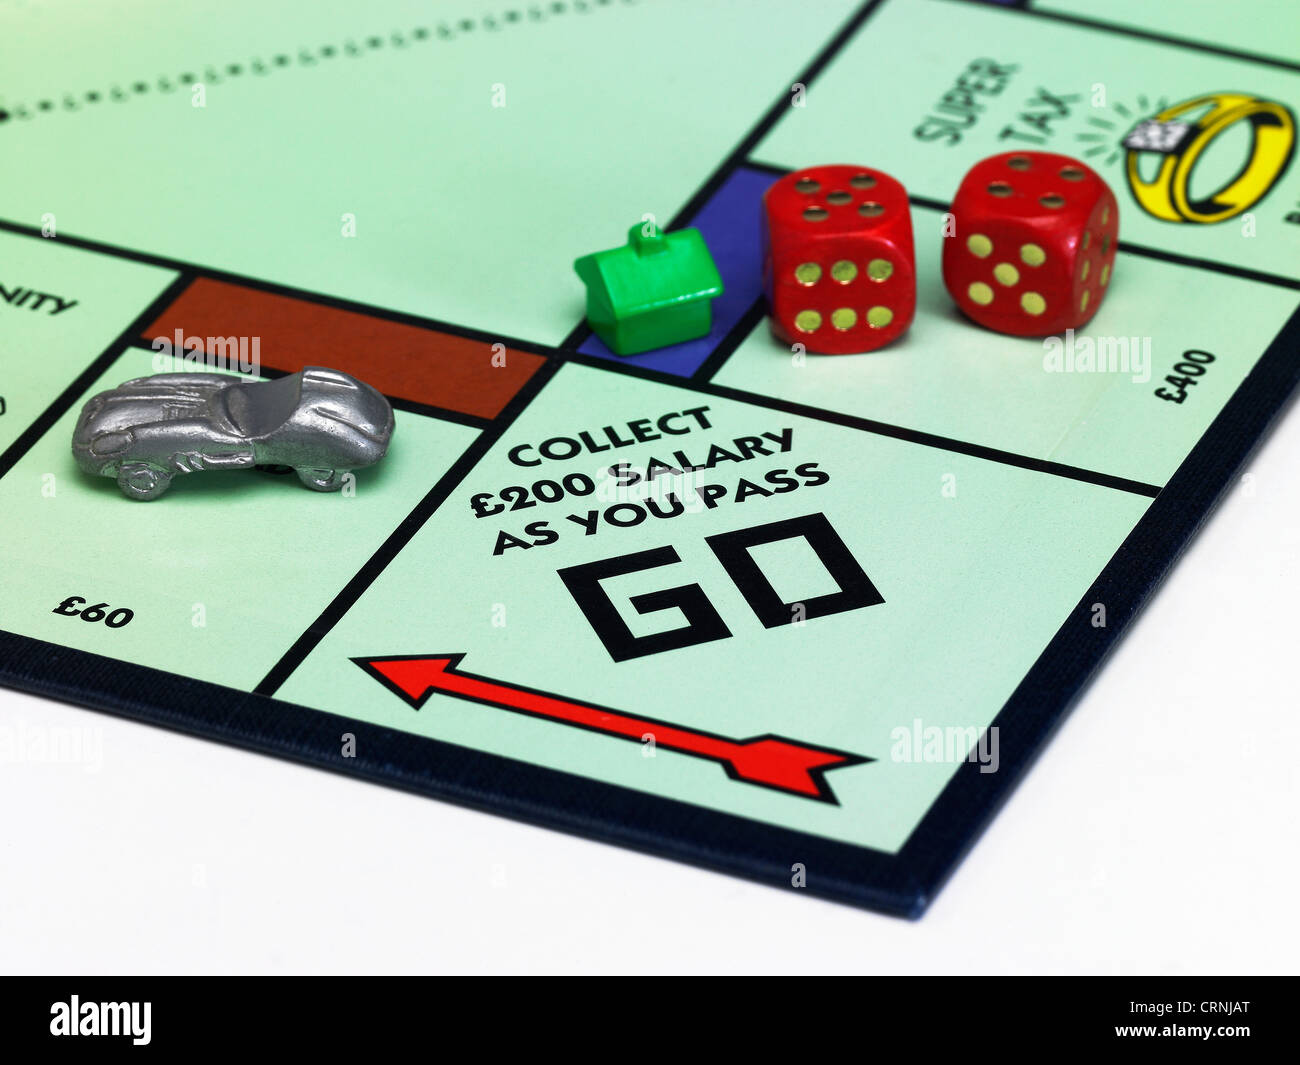 A Monopoly game board showing Go - Stock Image